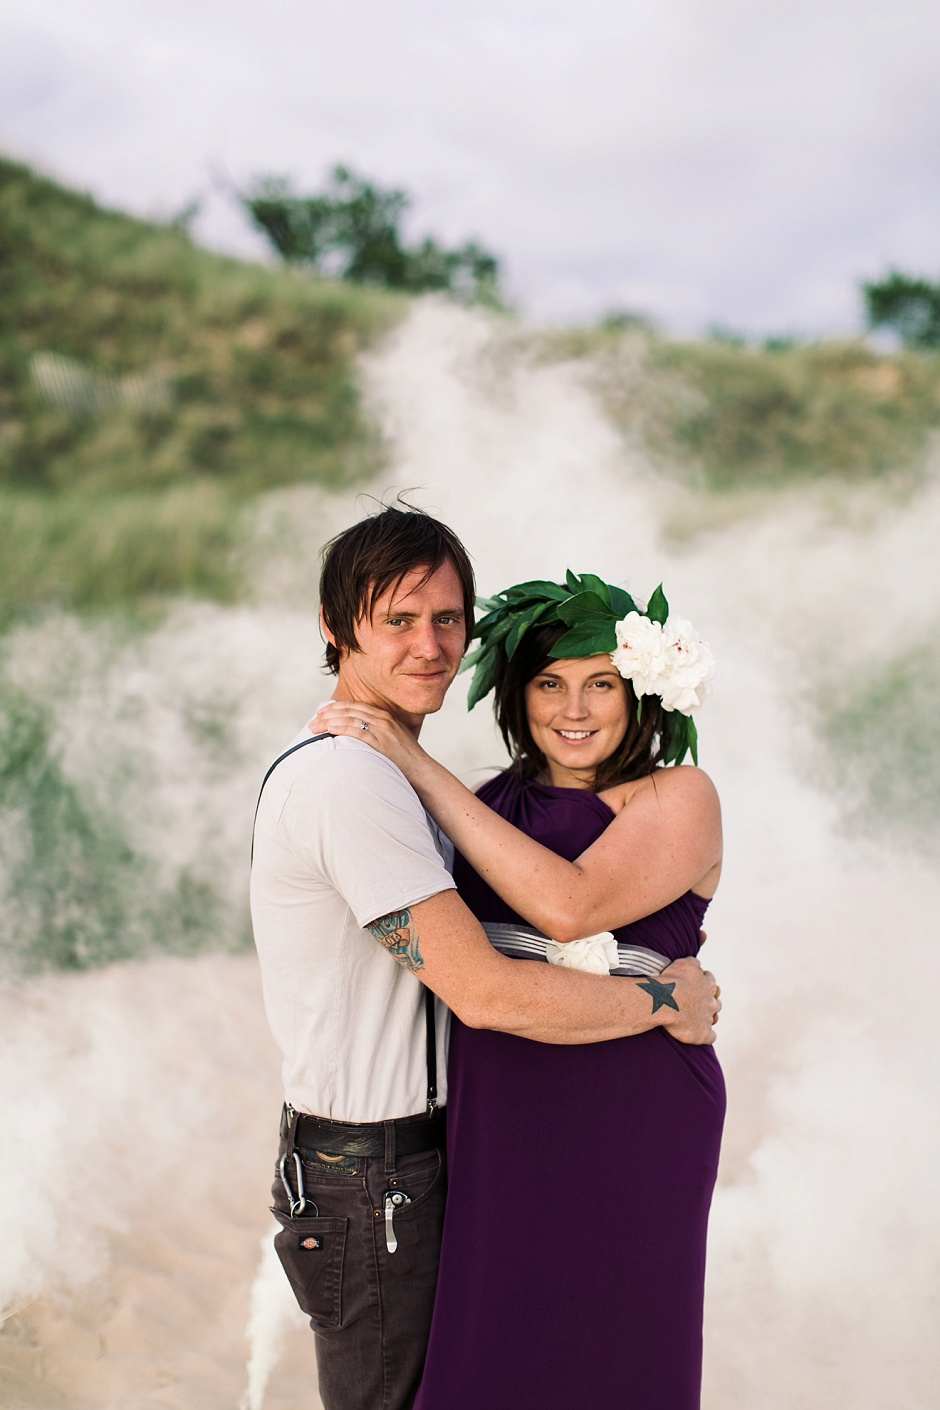 muskegon smoke bomb maternity photography